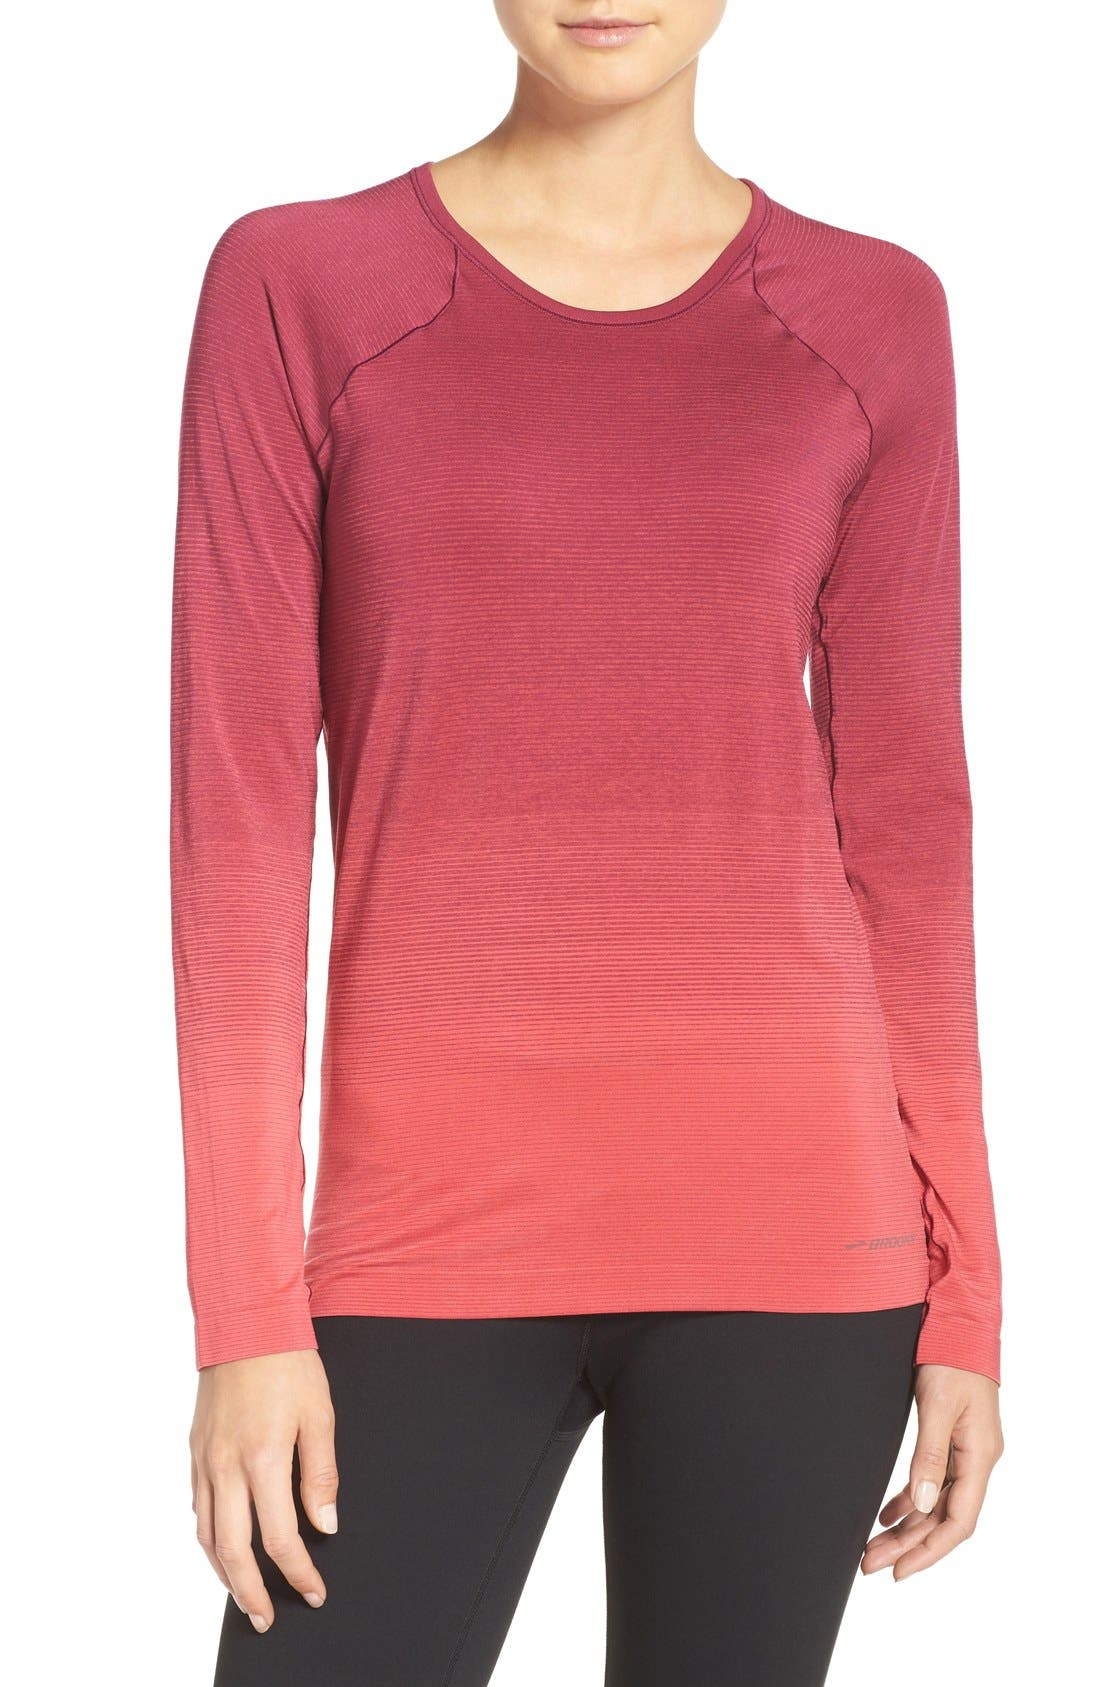 DriLayer Top,                         Main,                         color, Poppy/ Sangria